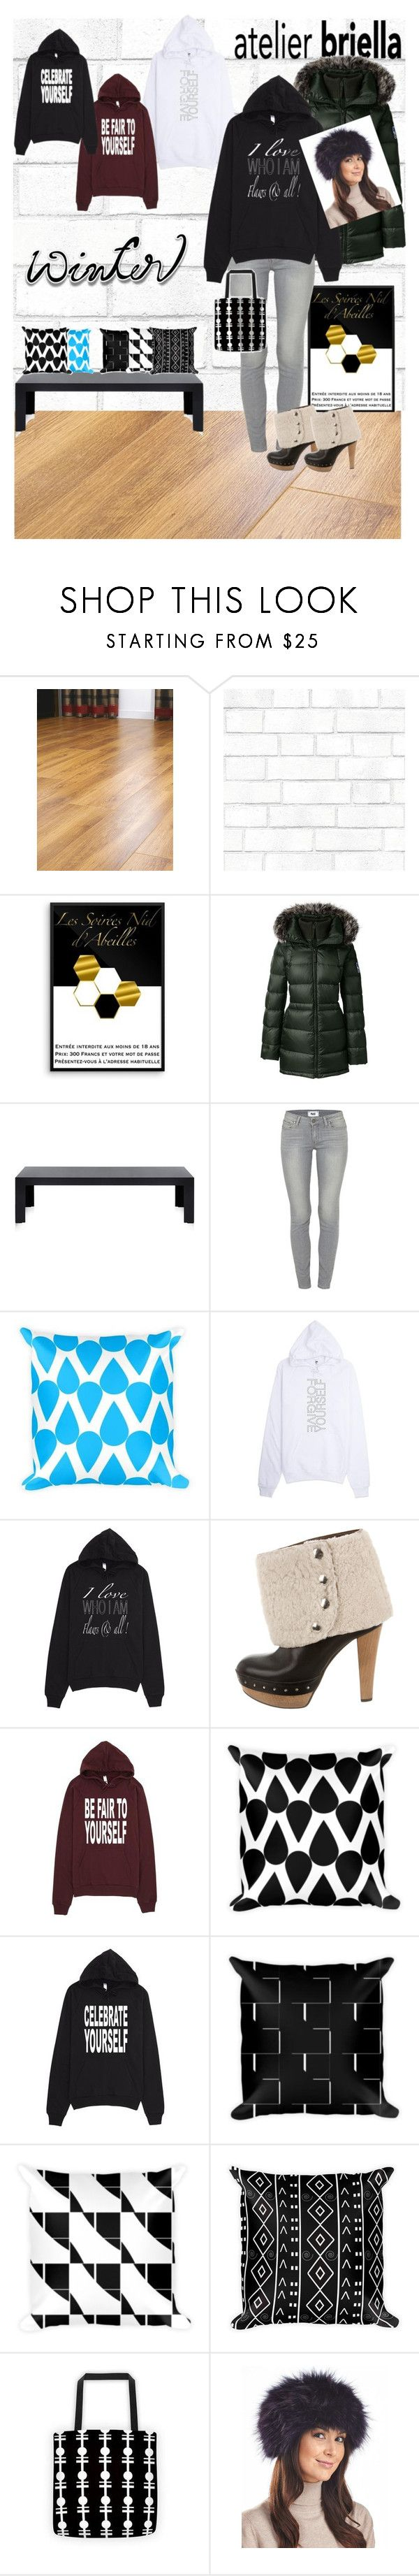 """Shopping At My Favorite Store Wearing My Favorite Hoodie/Sweater"" by atelier-briella ❤ liked on Polyvore featuring Tempaper, Lands' End, Kartell, Paige Denim, Marni, YOJ, FRR and wintersweater"